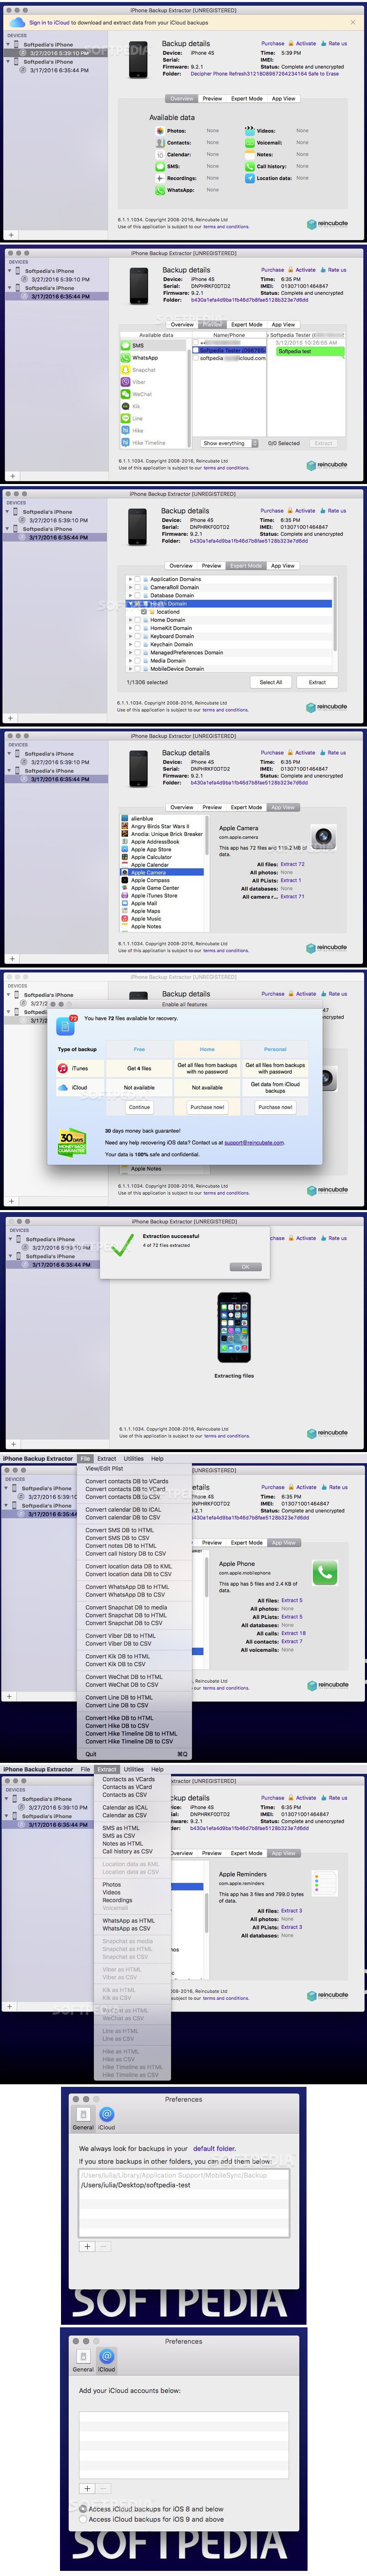 iPhone Backup Extractor 7 4 1 1469 Free Download | Mac